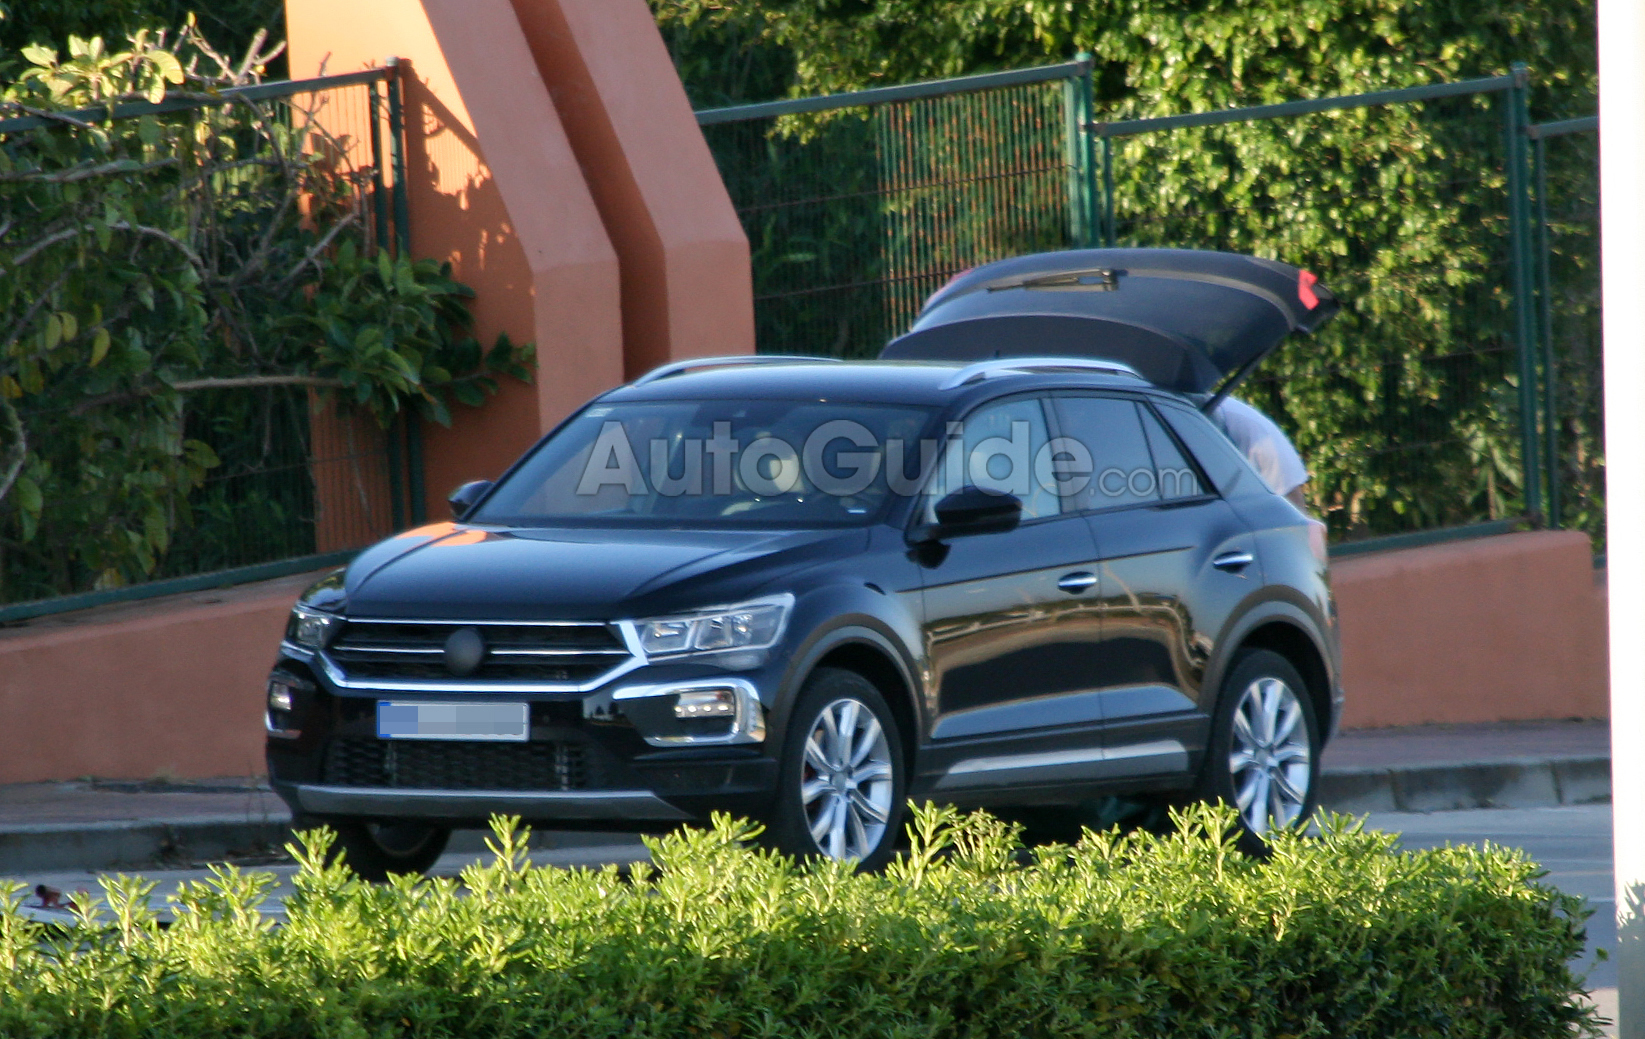 volkswagen rules out gti crossover model news. Black Bedroom Furniture Sets. Home Design Ideas